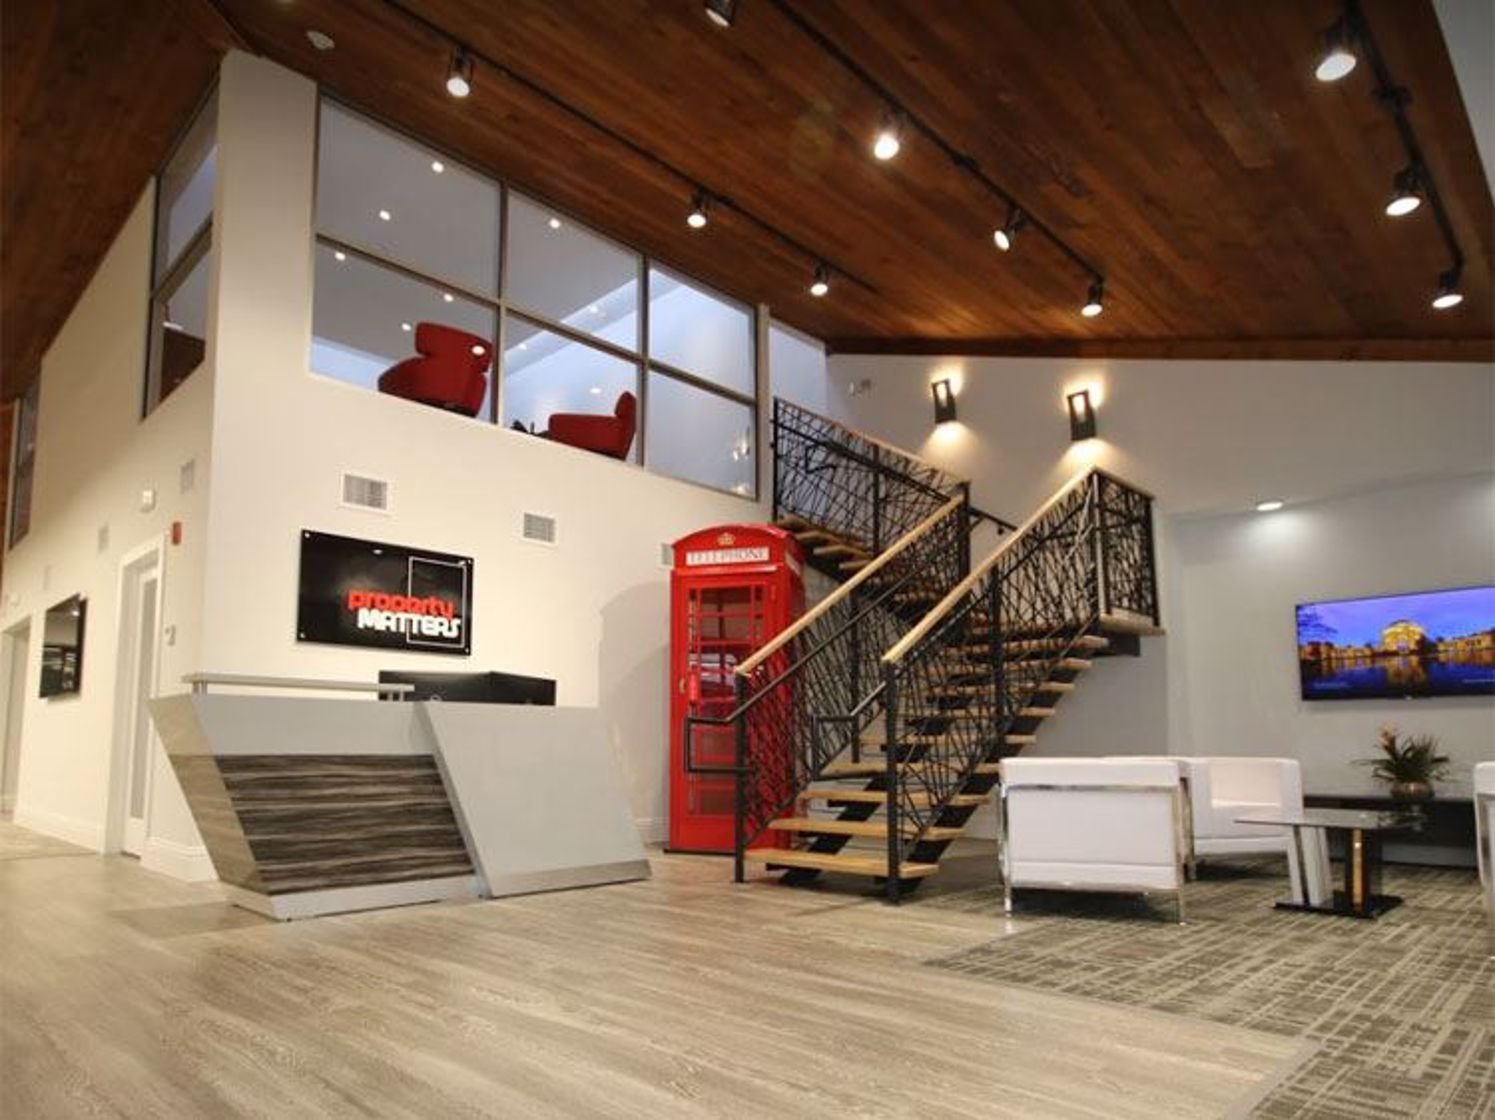 Property Matters Chooses 90 Degree Office Concepts To Design Furniture For Their Boca Raton